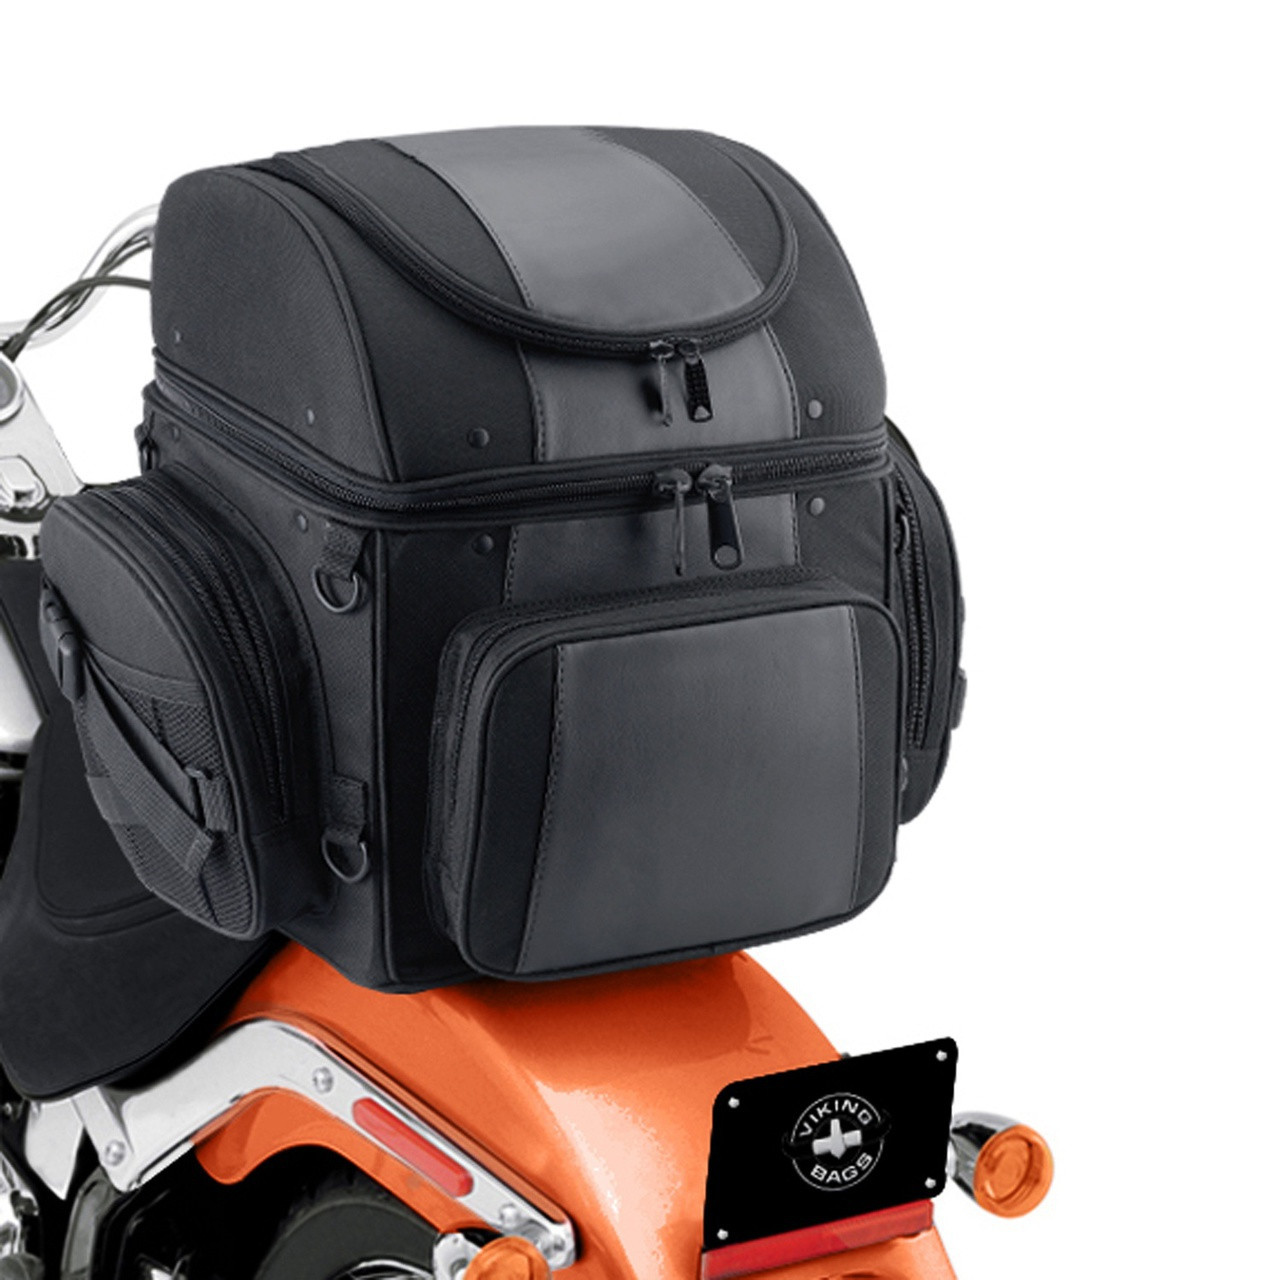 Large Back Motorcycle Seat Luggage (4080 cubic inches)  Back on Bike View